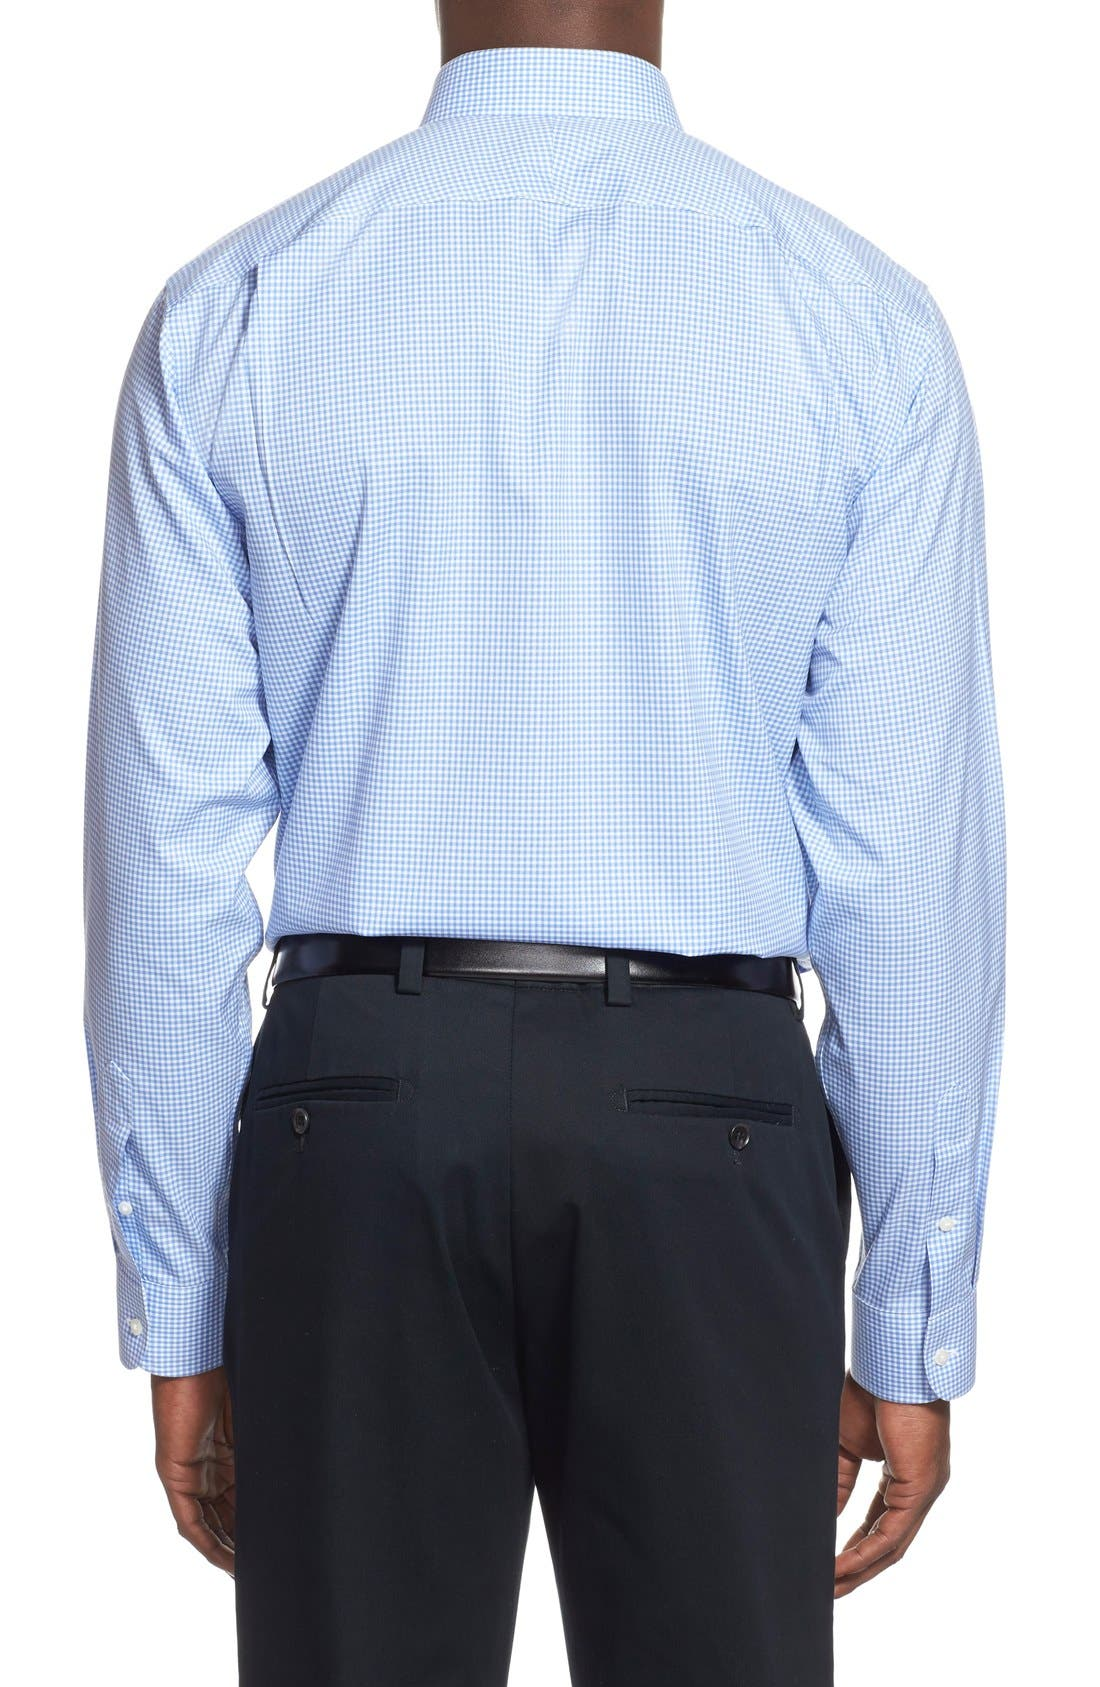 Alternate Image 3  - Nordstrom Men's Shop Smartcare™ Traditional Fit Gingham Dress Shirt